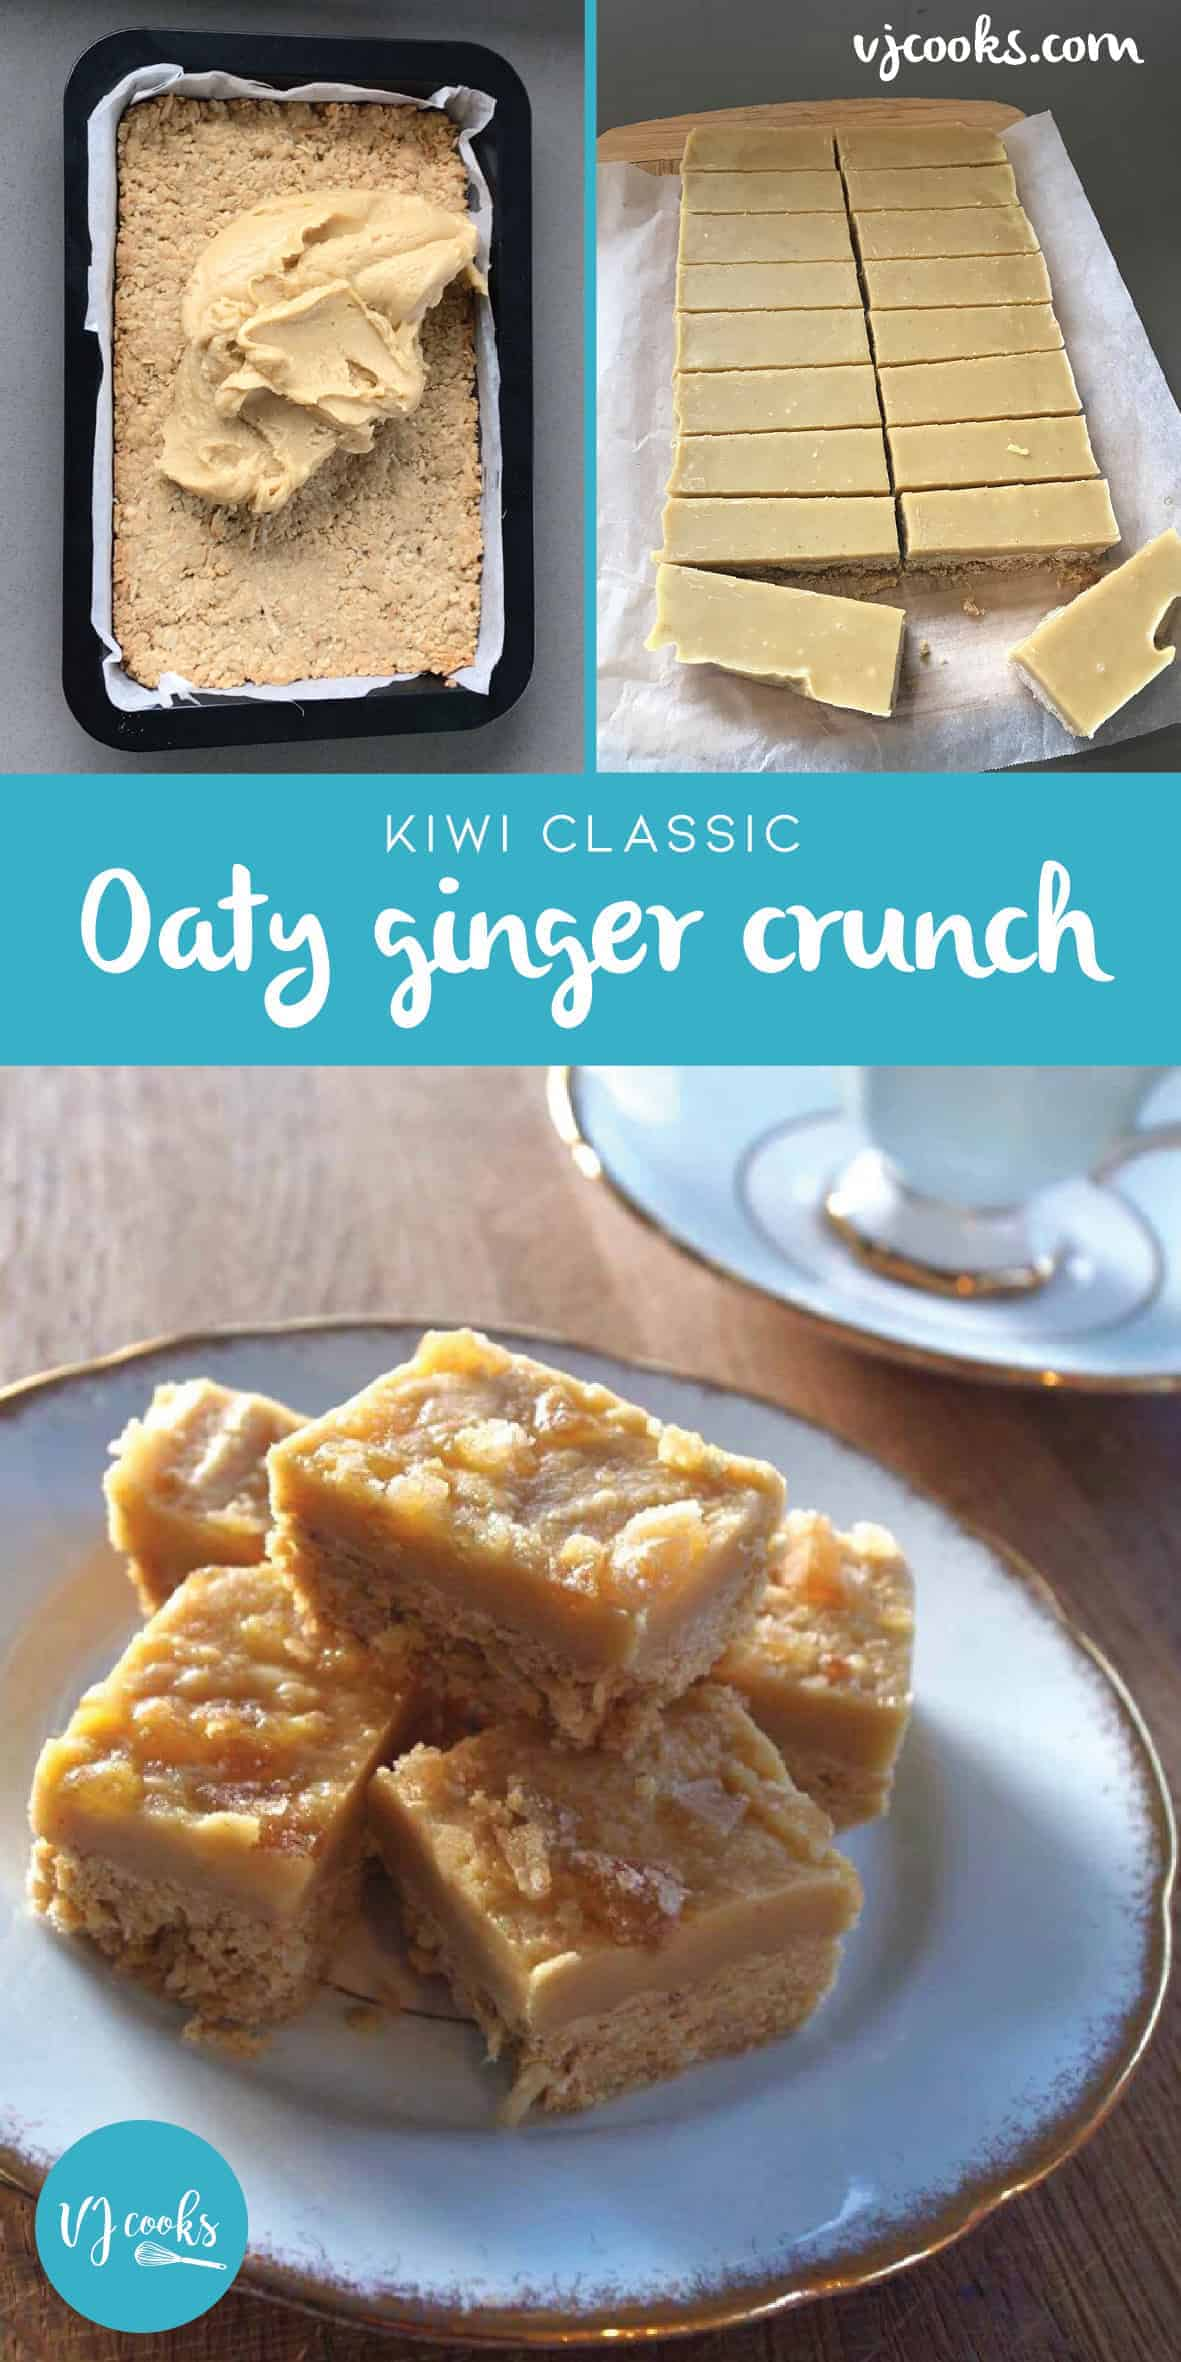 Oats ginger crunch by VJ cooks